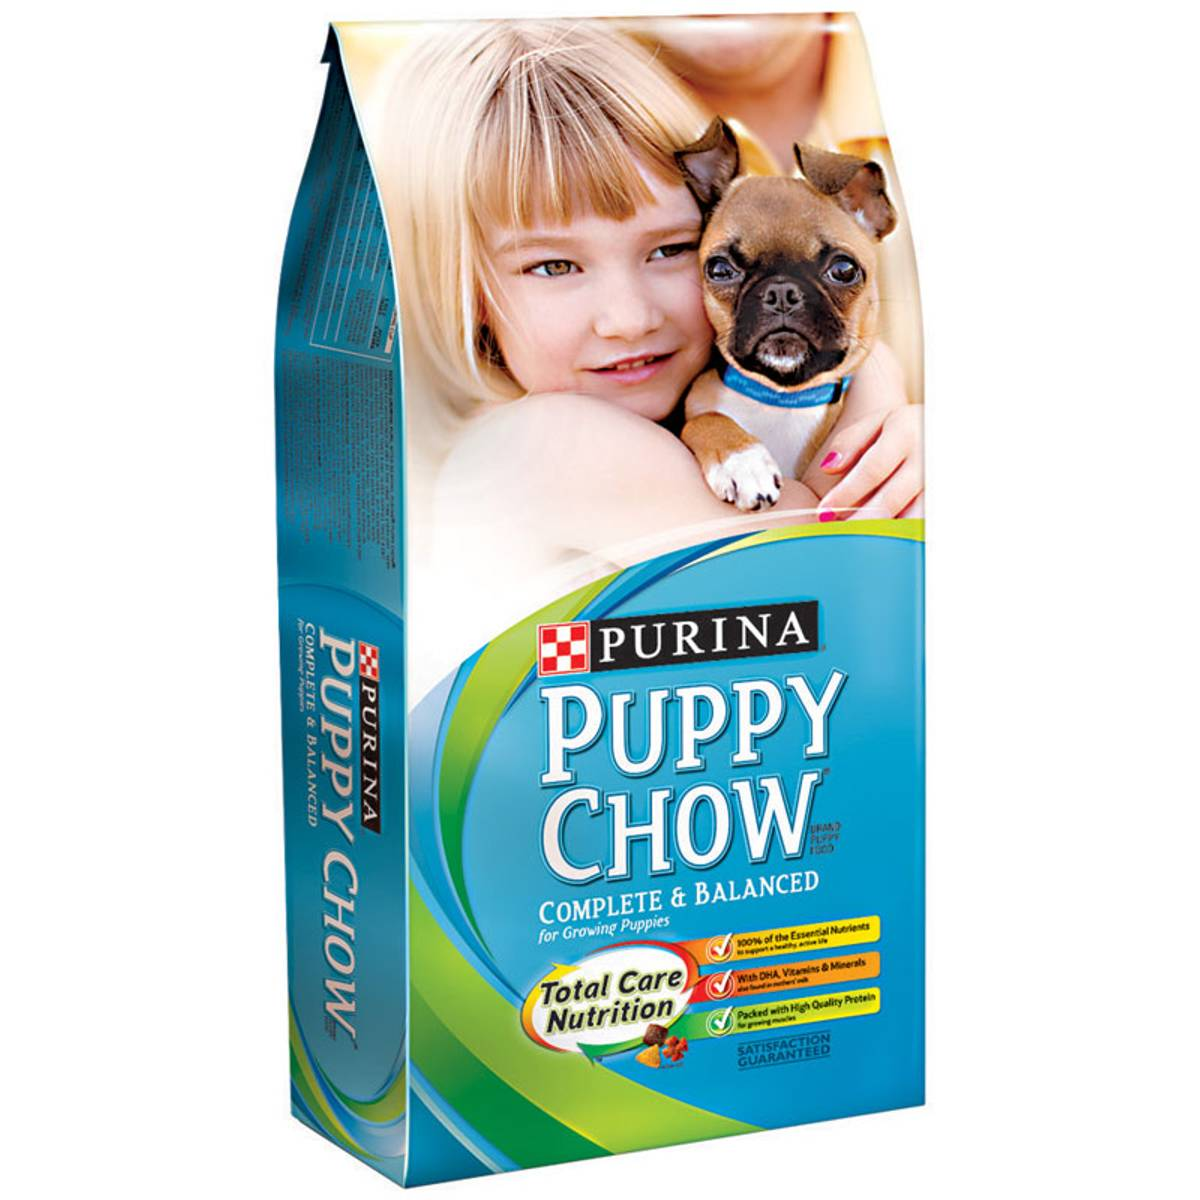 Purina Puppy Chow Complete and Balanced Dog Food